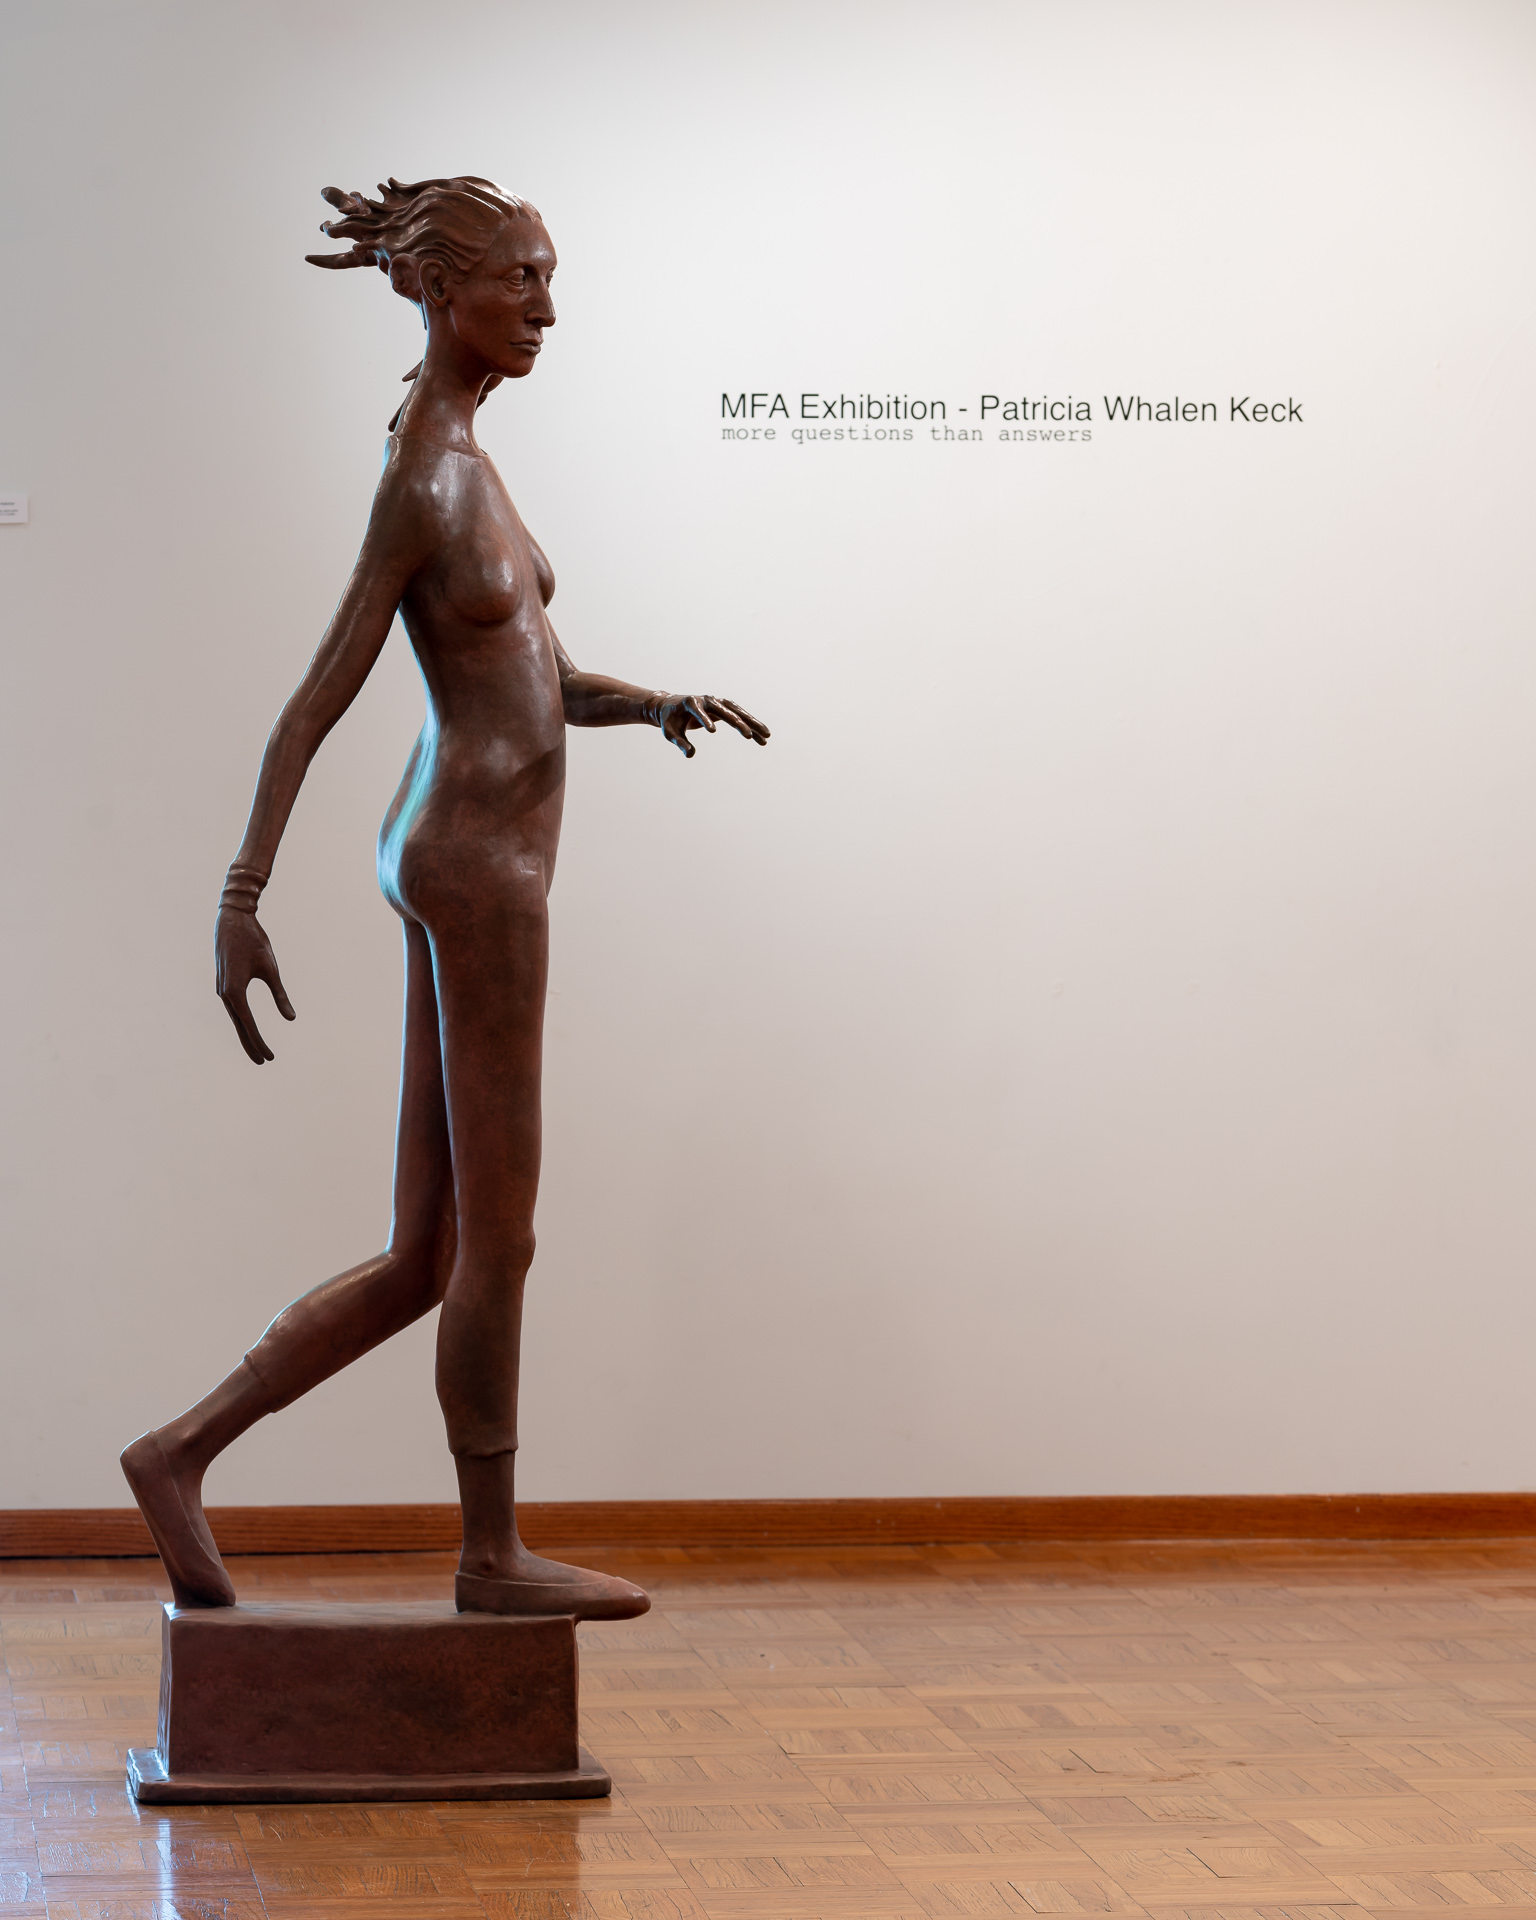 """Image: Patricia Whalen Keck """"The Pedestrian"""" Bronze. A large sculpture of a woman in a position that suggest she is walking or crossing across the space. The show title of the exhibition is seen on the wall in the background. Image courtesy of the artist"""